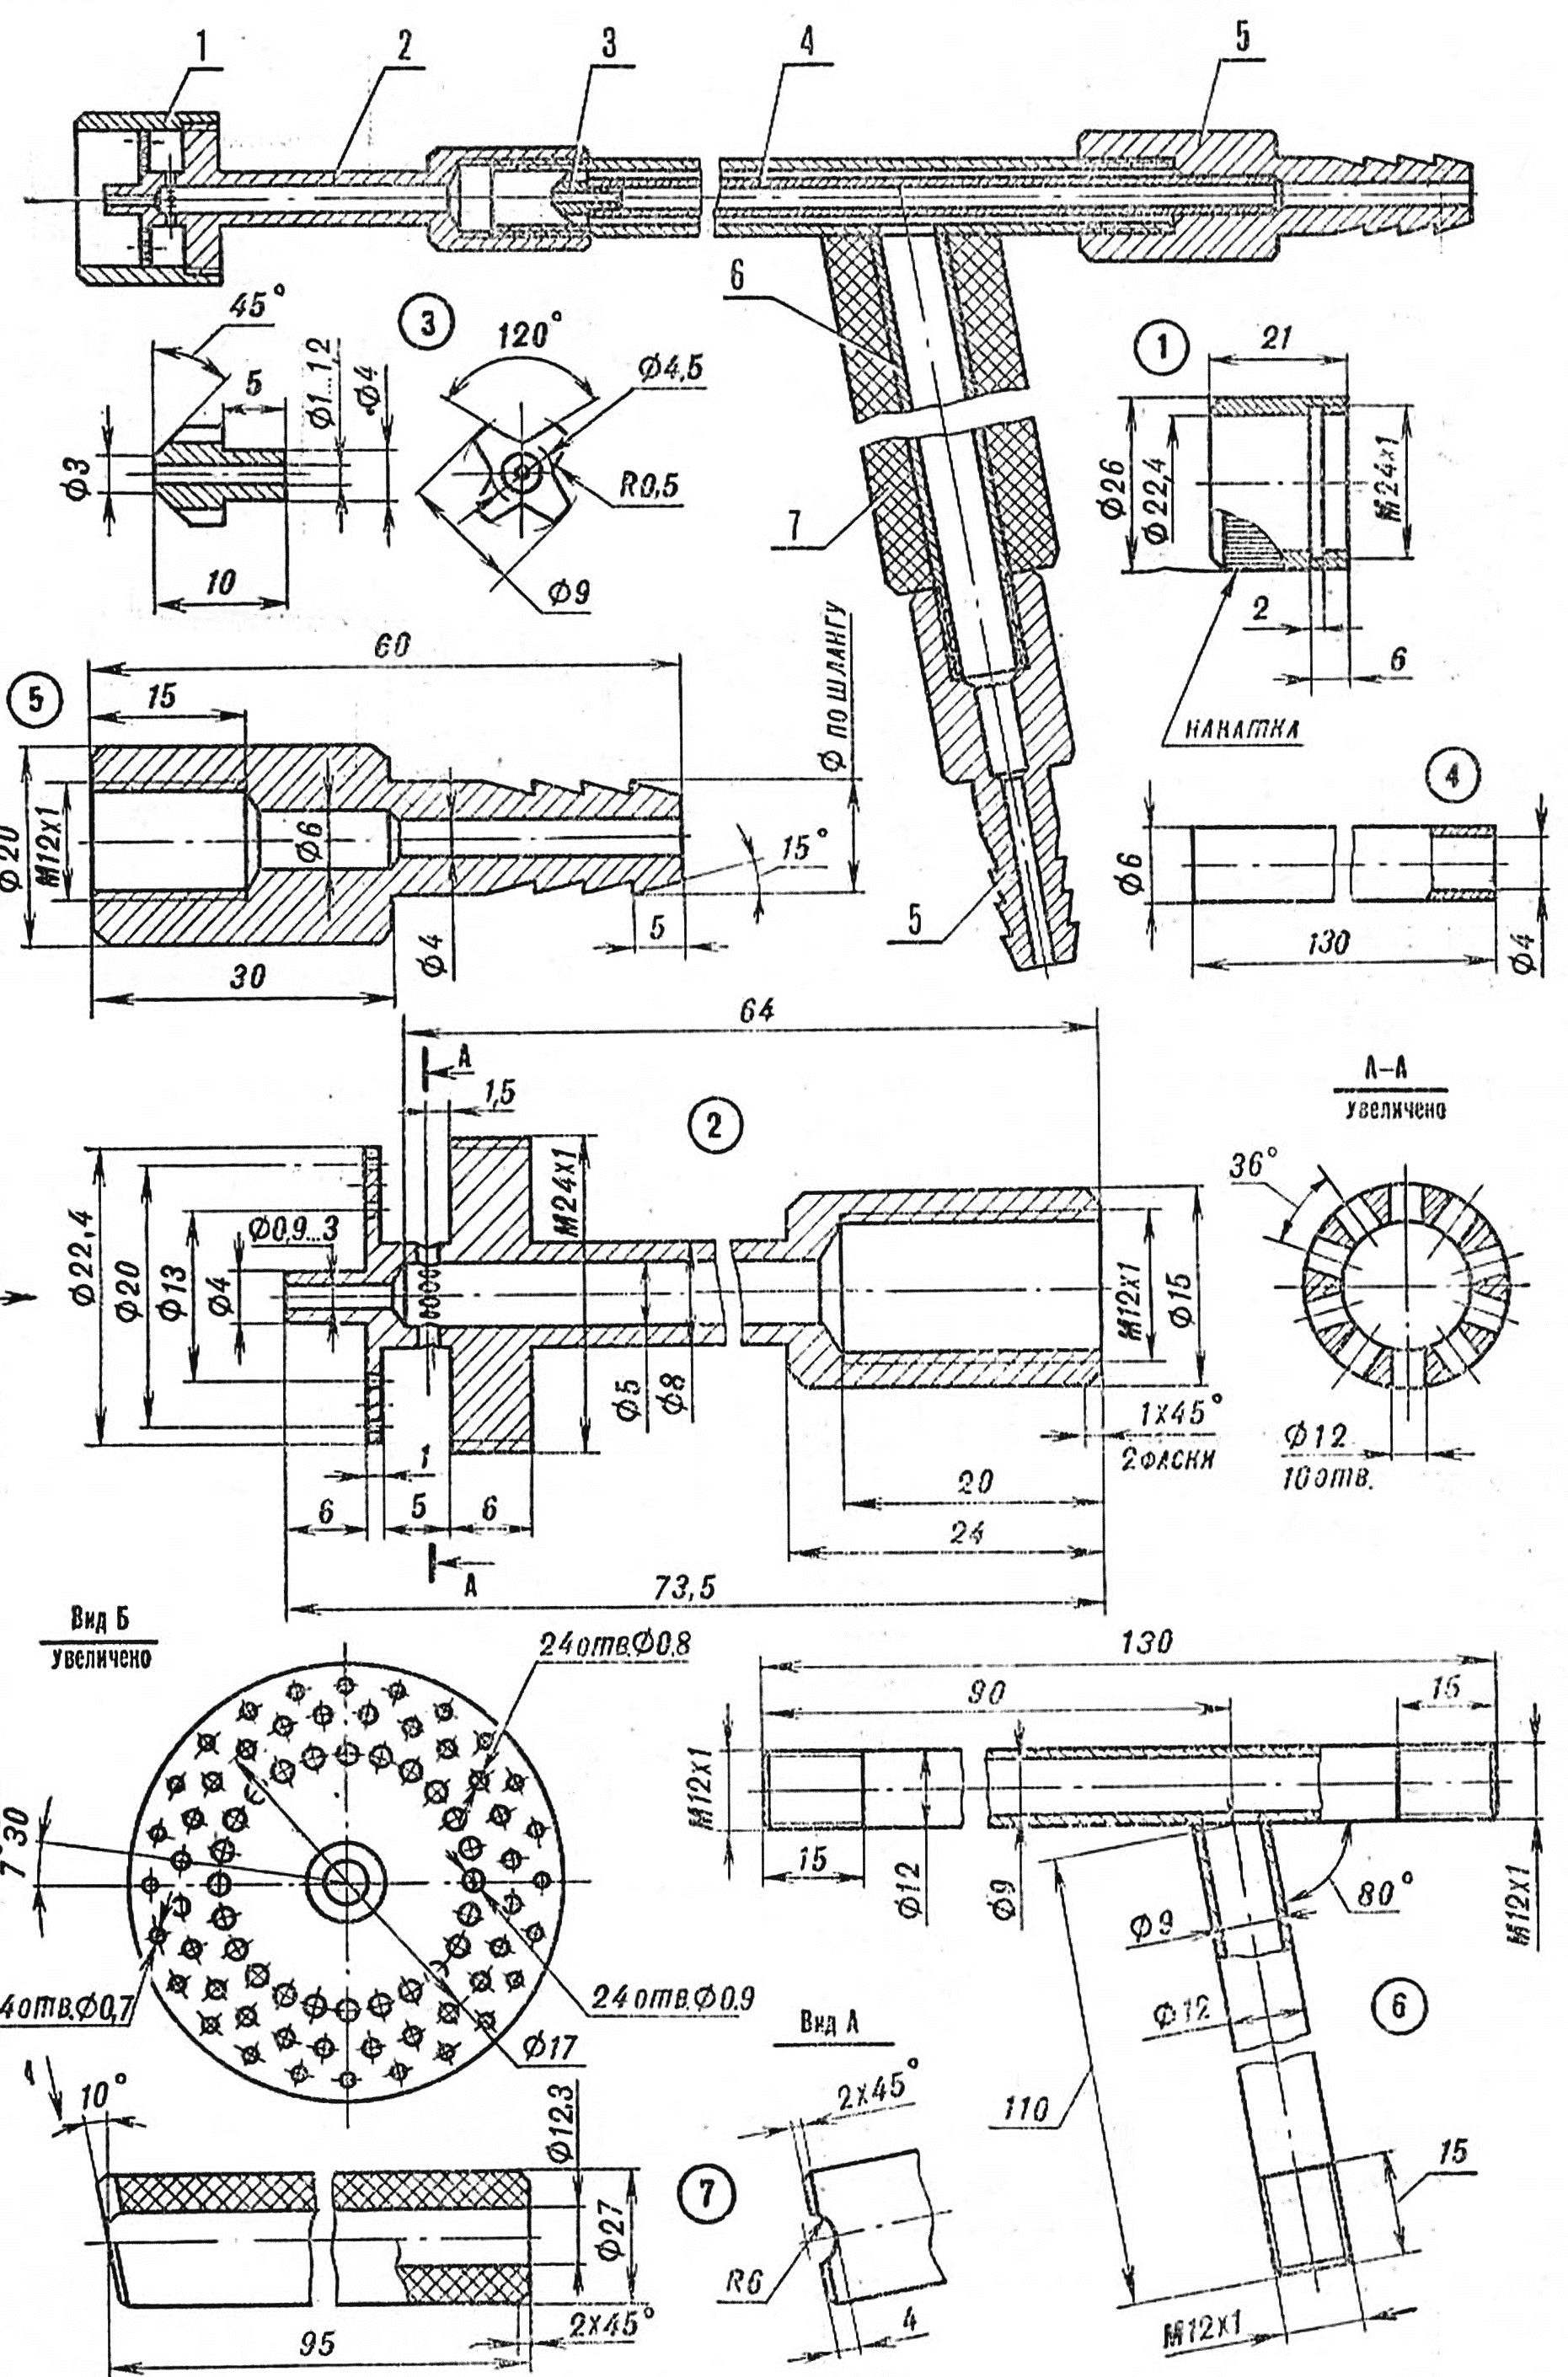 Fig. 1. Burner Assembly